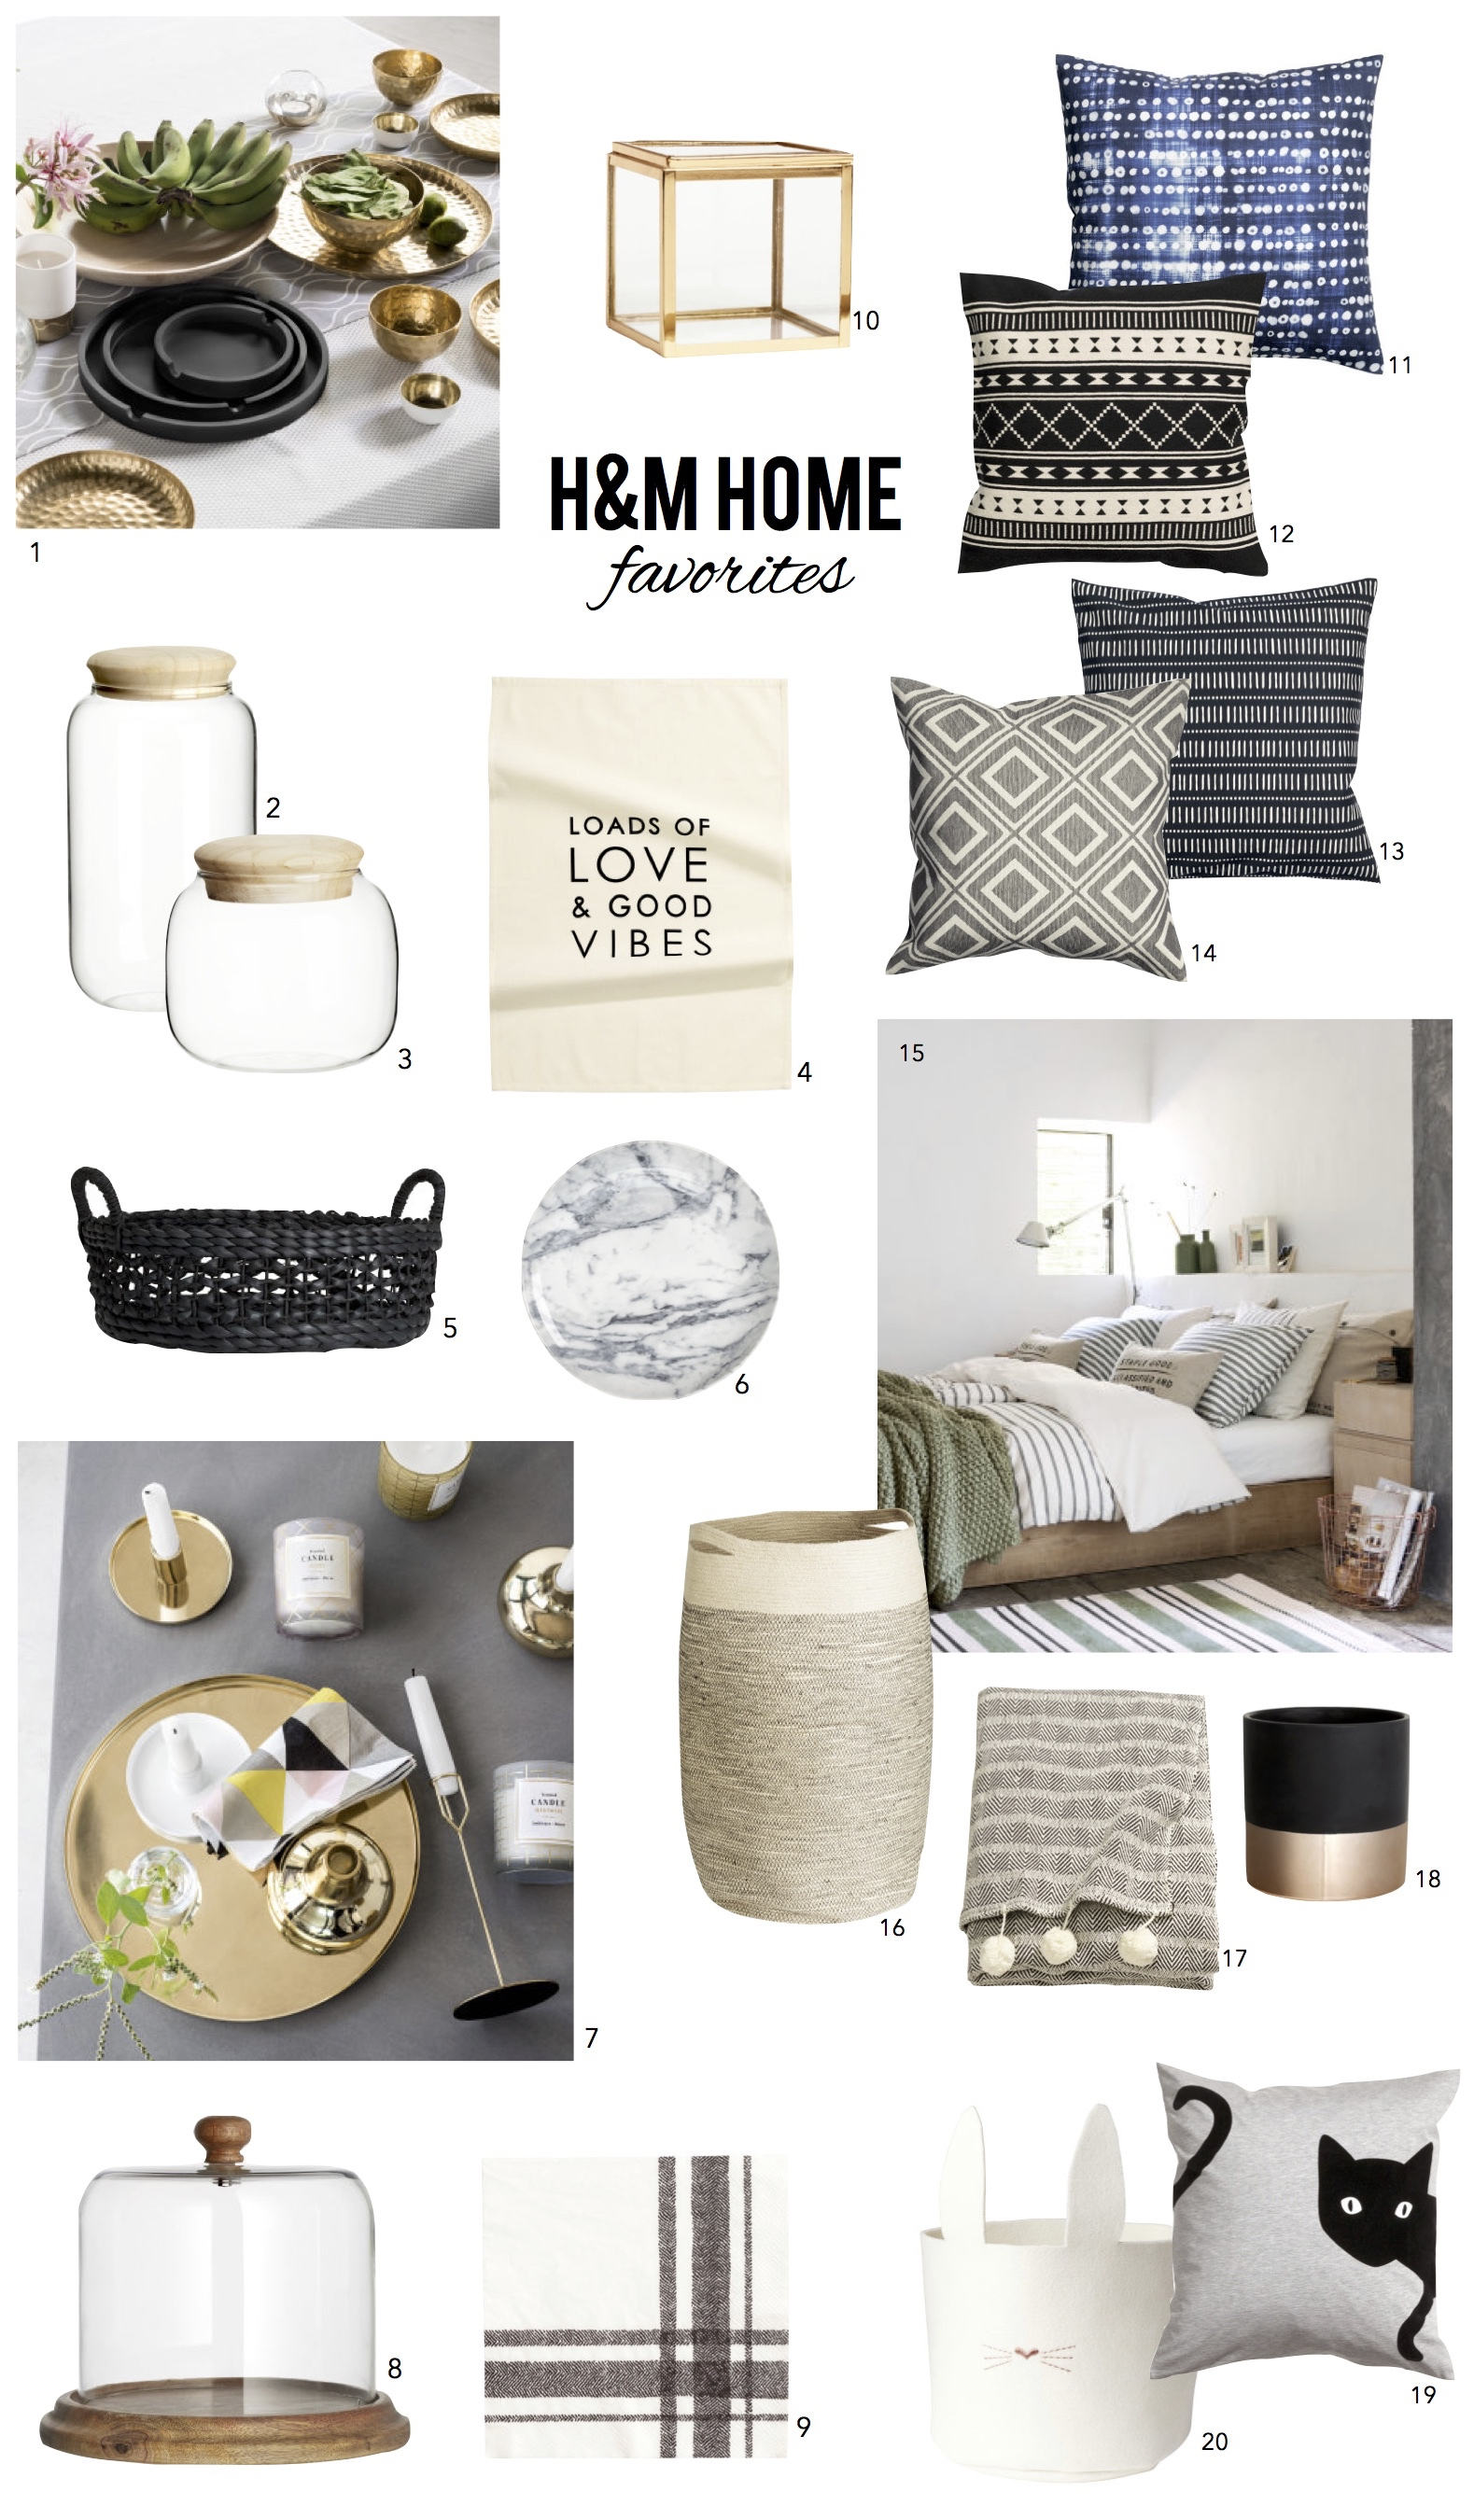 Top 20 H&M Home Favorites | Summer 2015 | Whitestone Style | Whitestone Design Group | Seattle